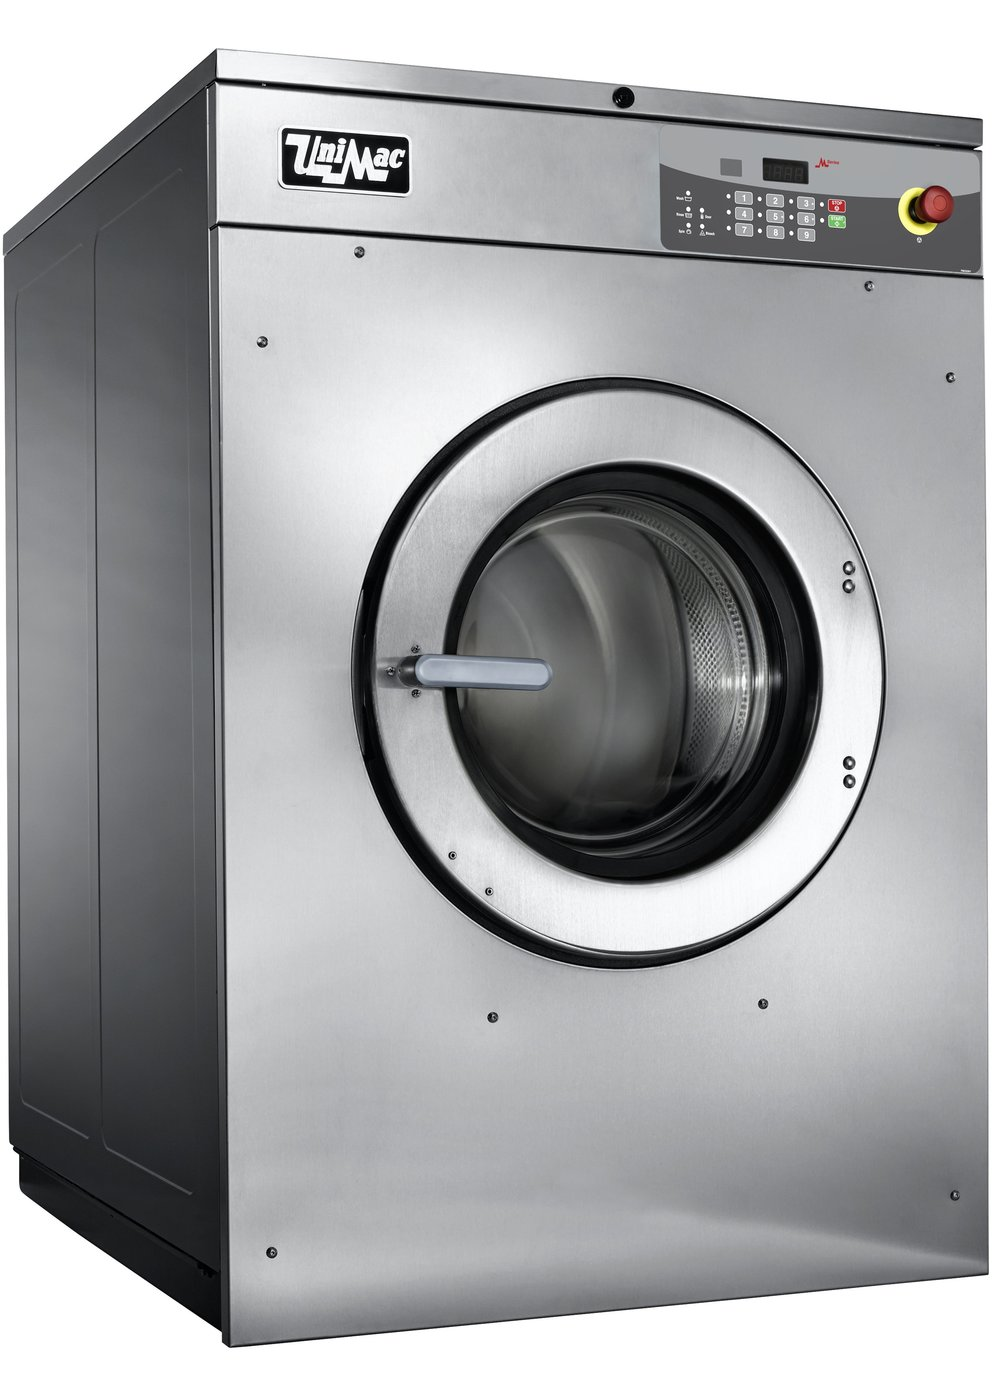 Bunker suits UniMac washer-extractor  Commercial washer for bunker suits   Washer for bunker suits  Robust commercial washer   Bunker suits washer